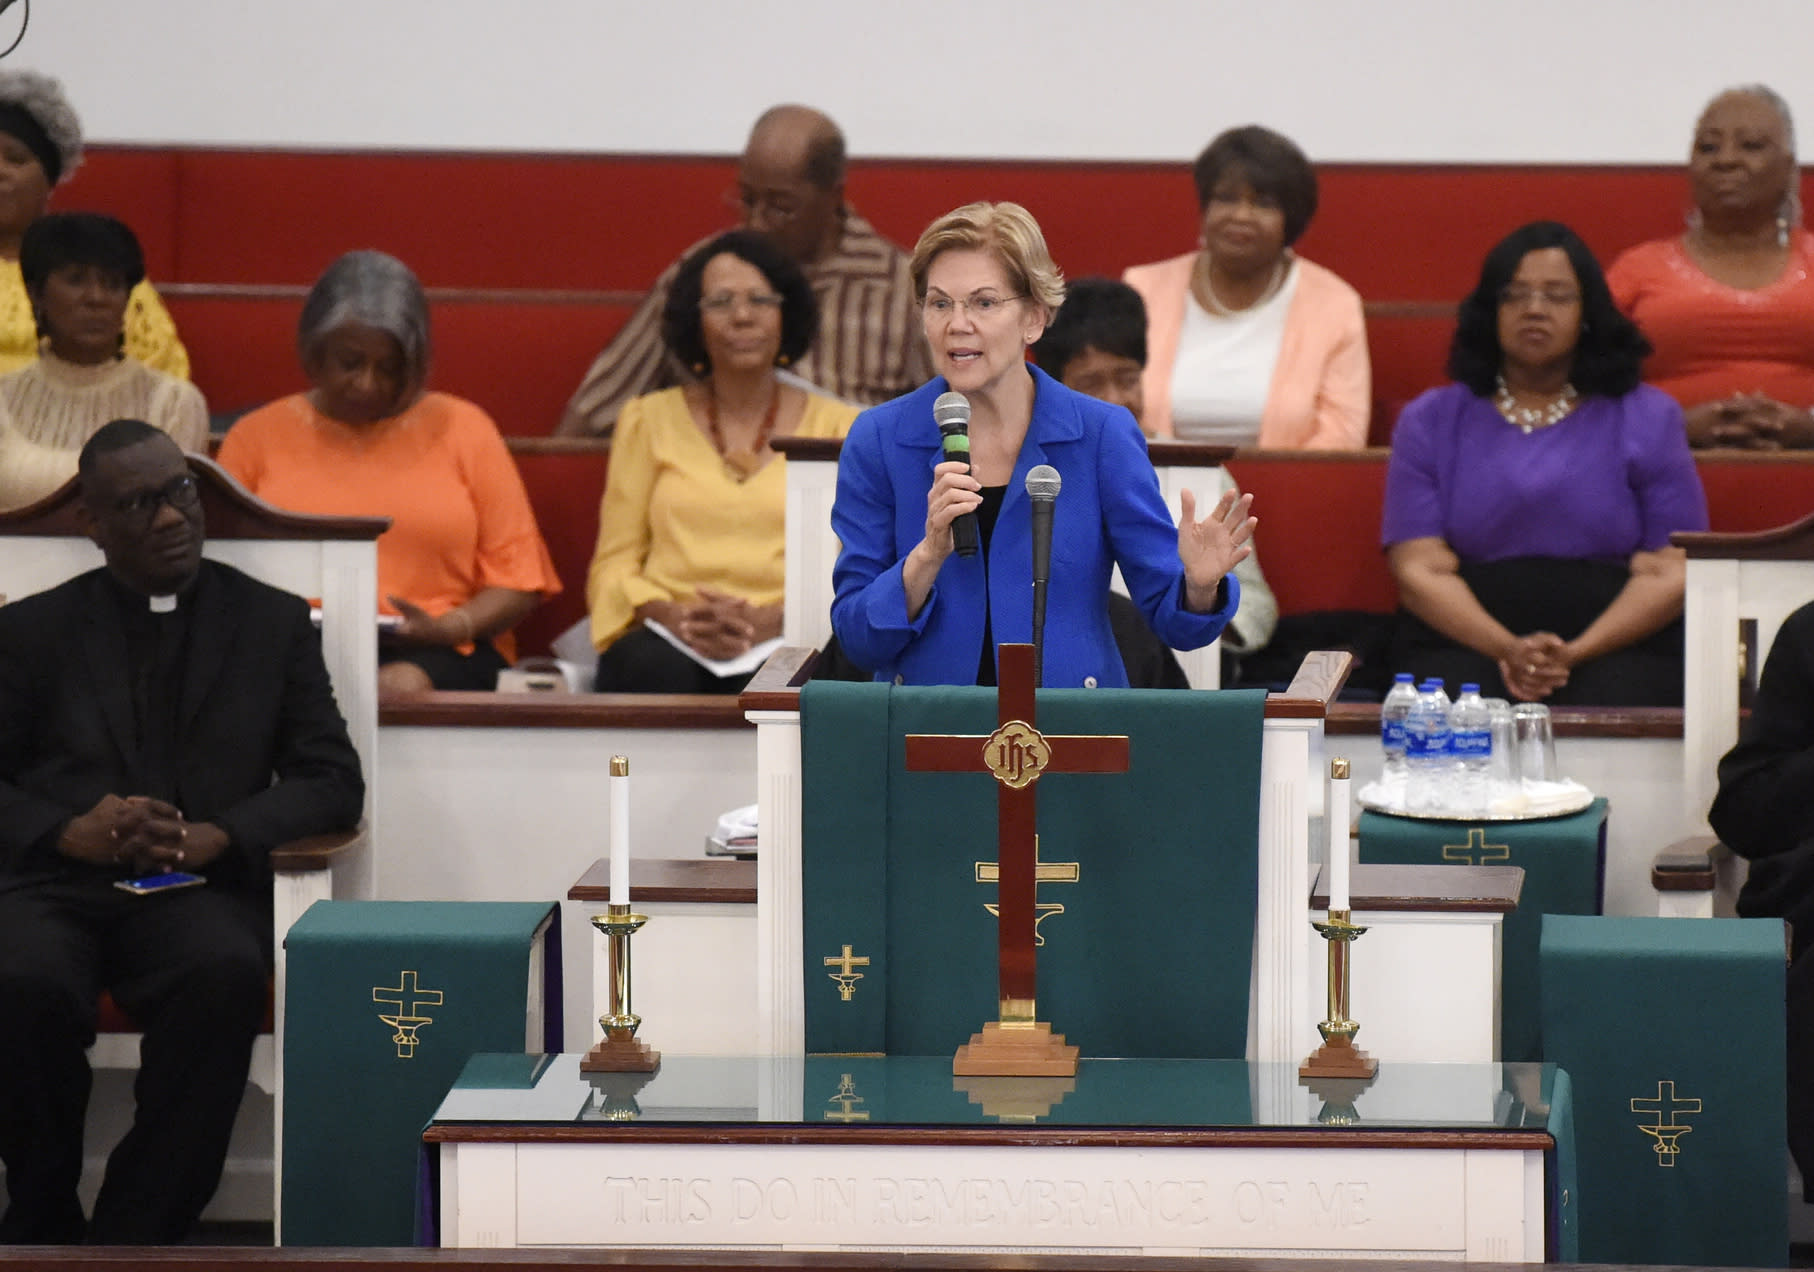 Warren Delivers Public Apology at Native American Candidate Forum